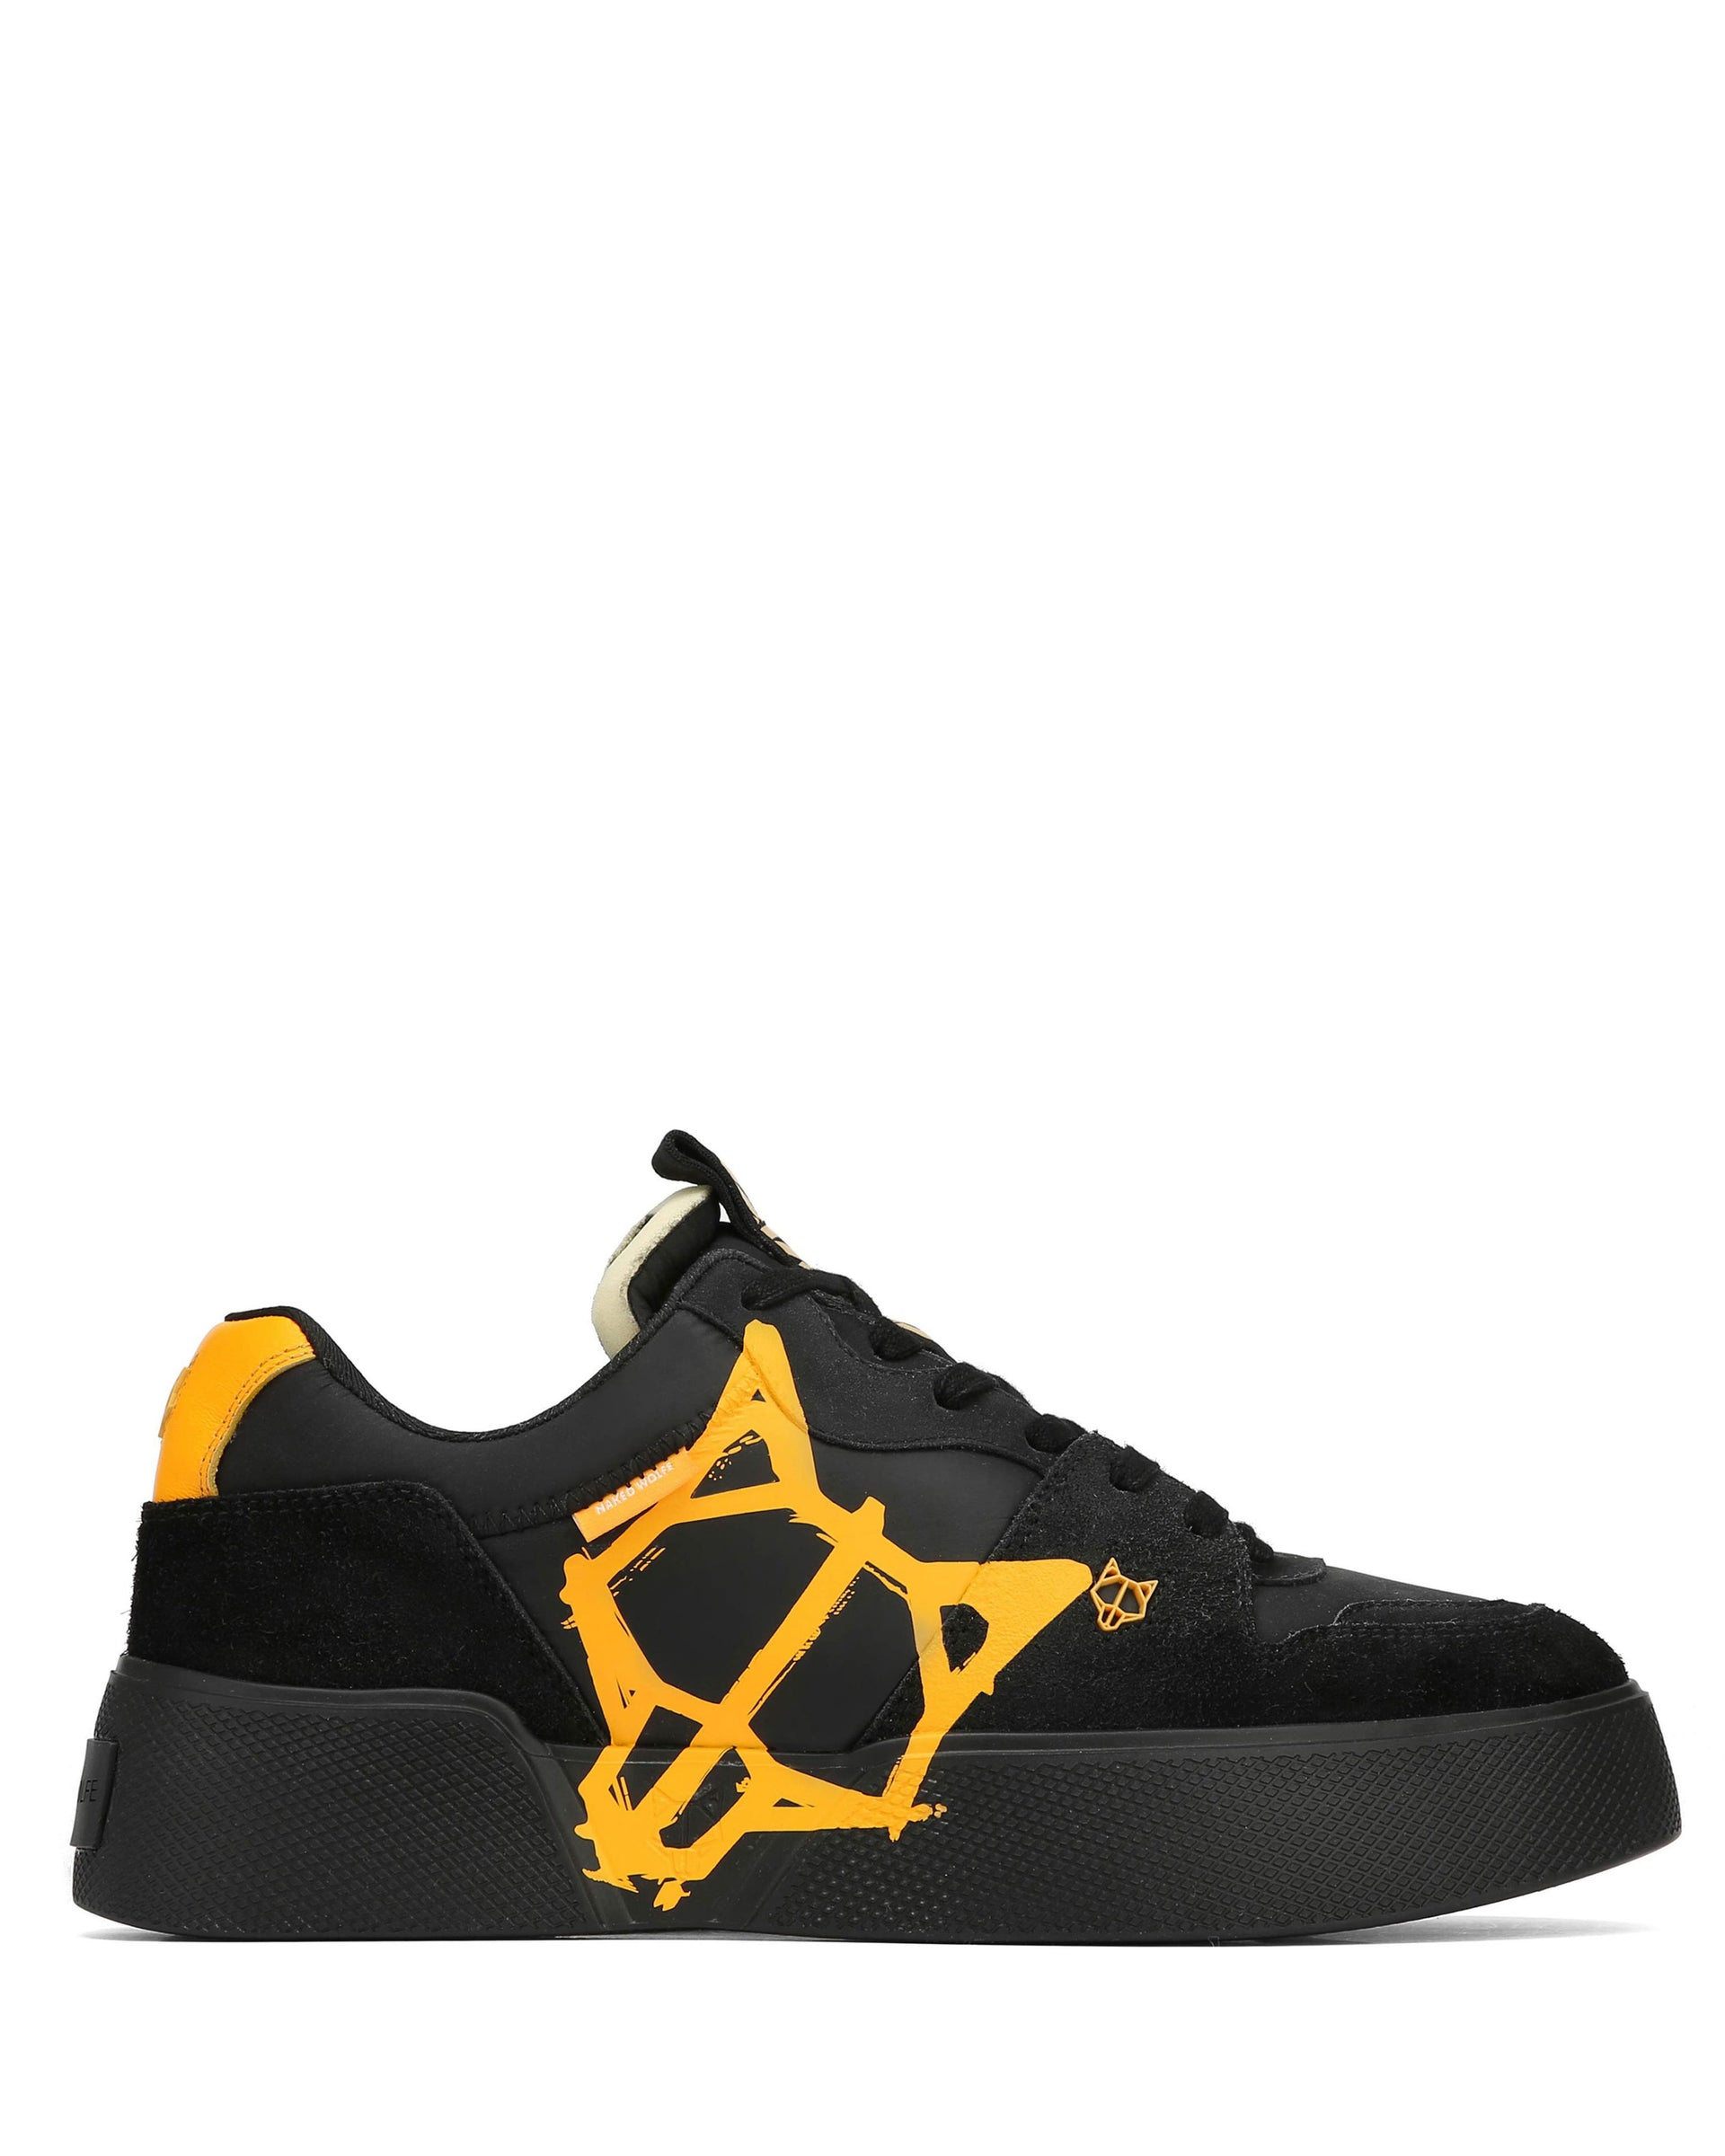 Piranha Black/Yellow